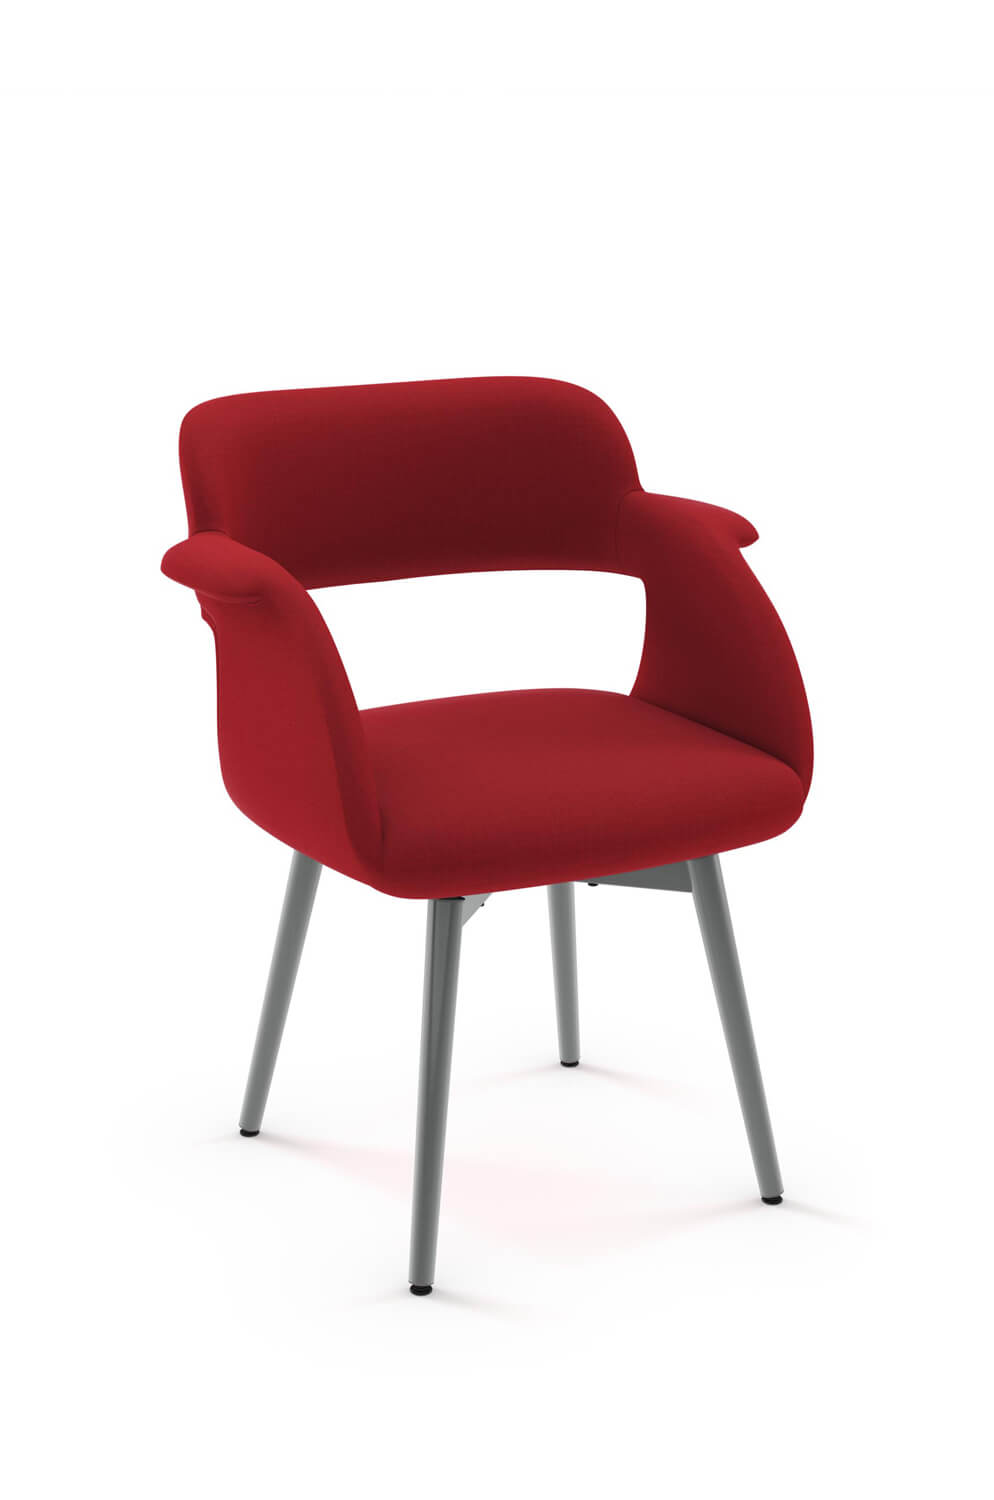 swivel upholstered chairs recover leather chair amisco s sorrento modern dining ships free with half arms and four metal legs